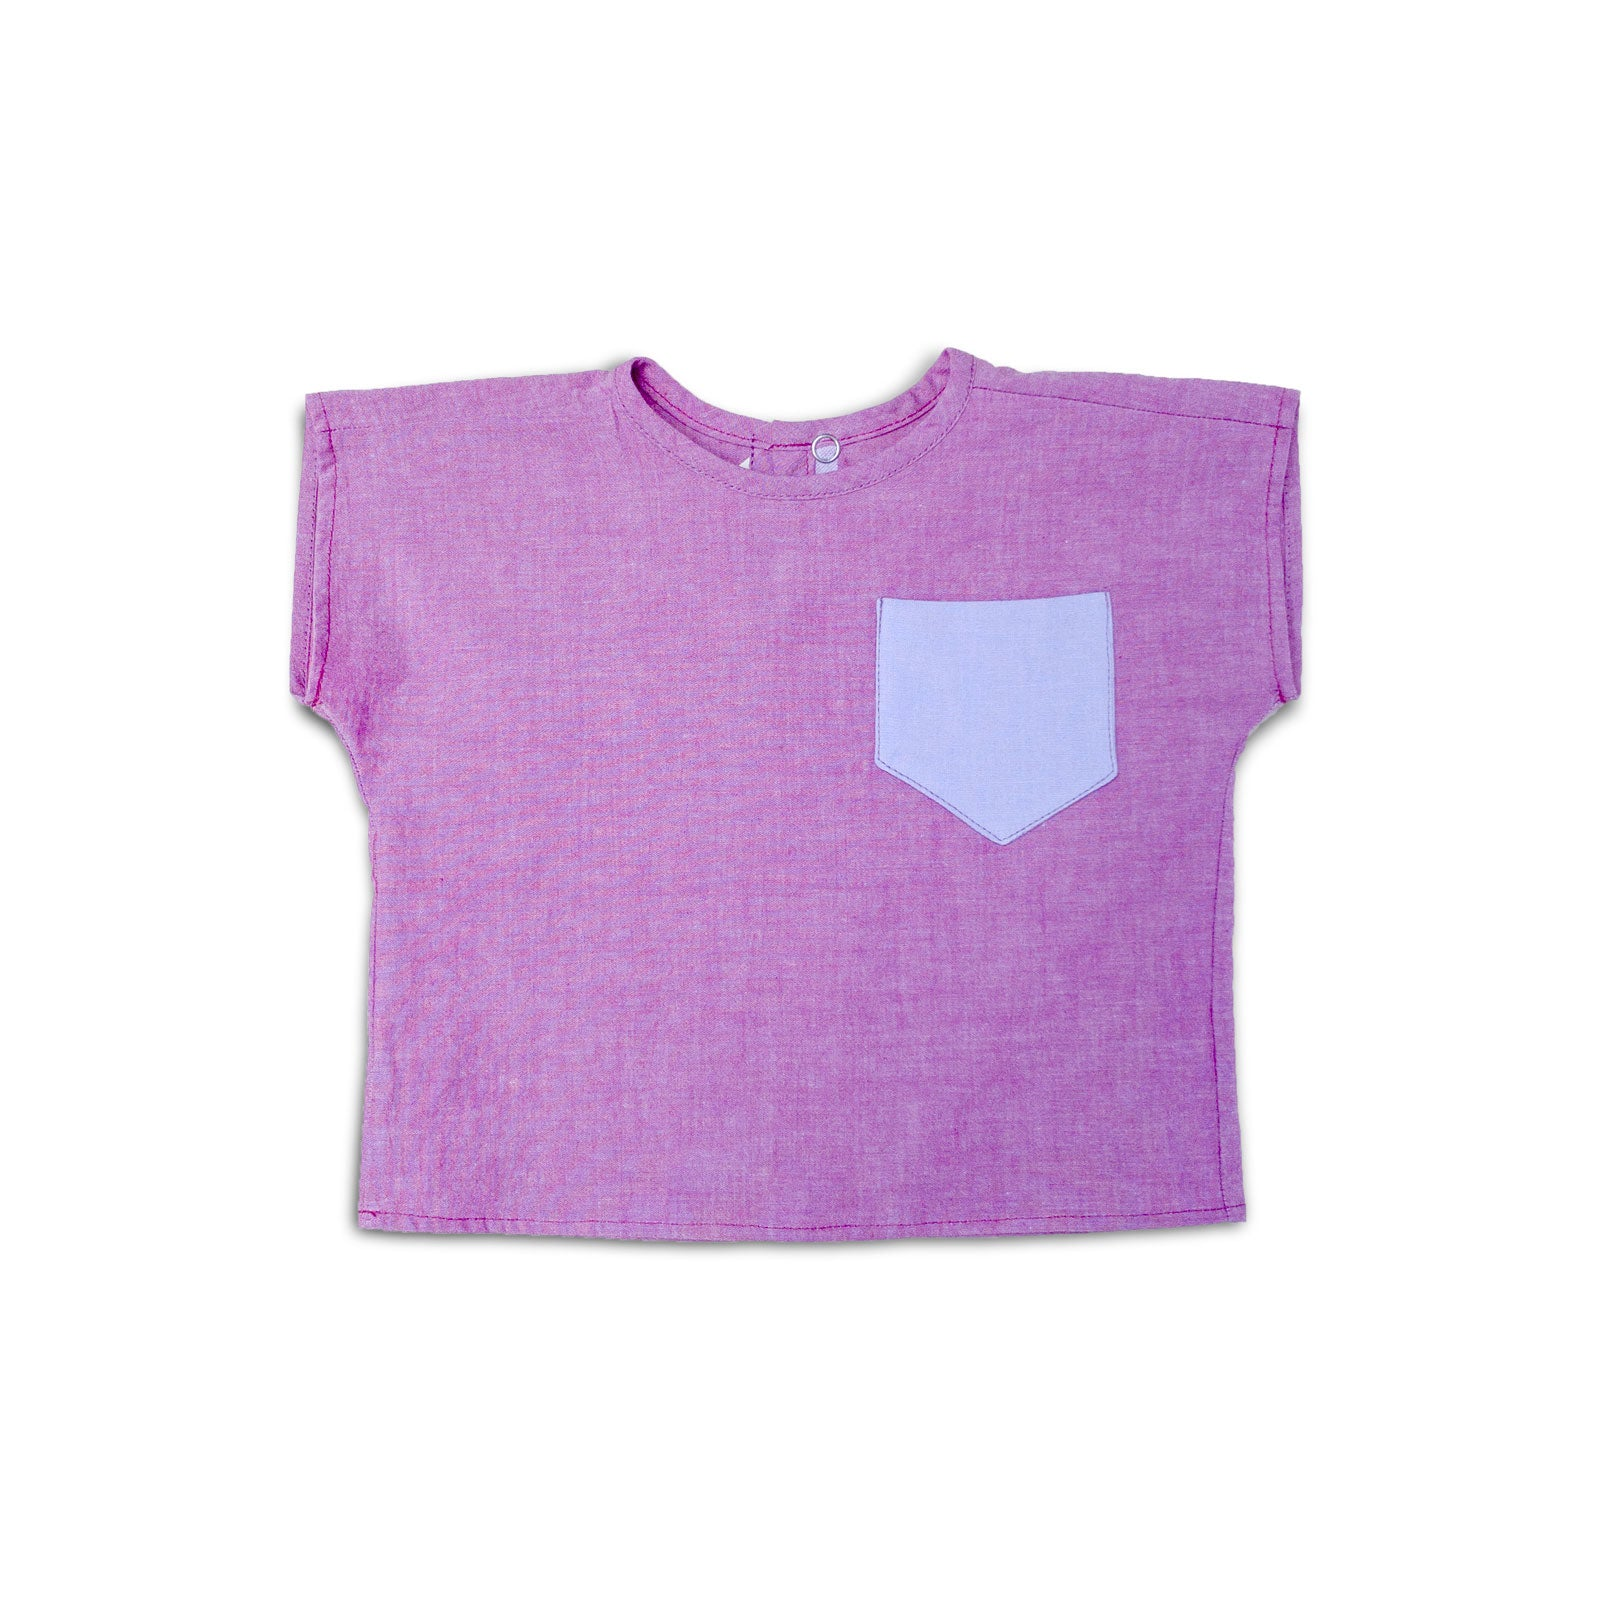 Lilac Pocket Top